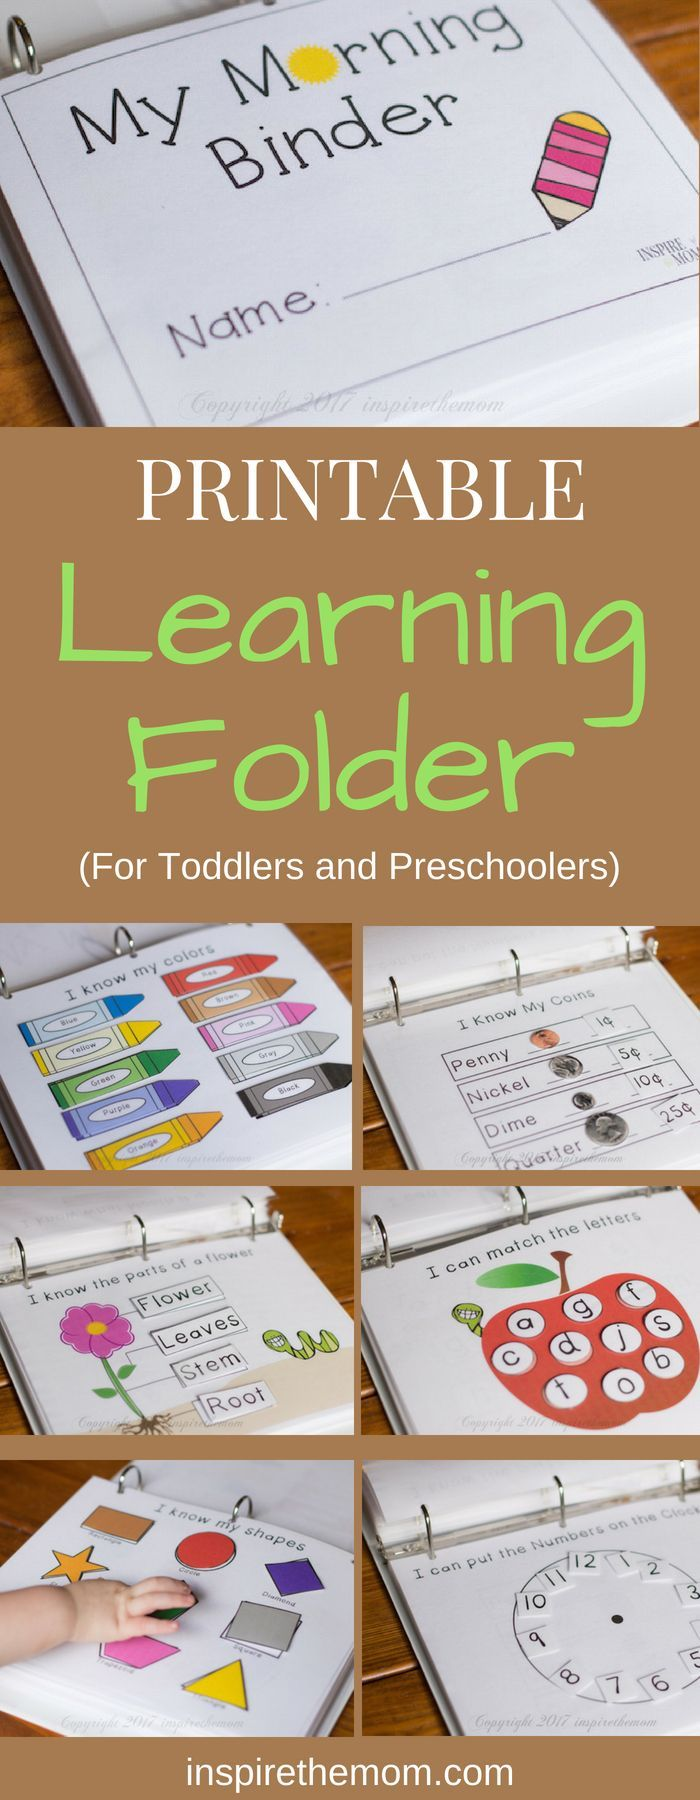 Printable Learning Folder for the Early Years - #activities #Early #Folder #Learning #Printable #Years #toddlers